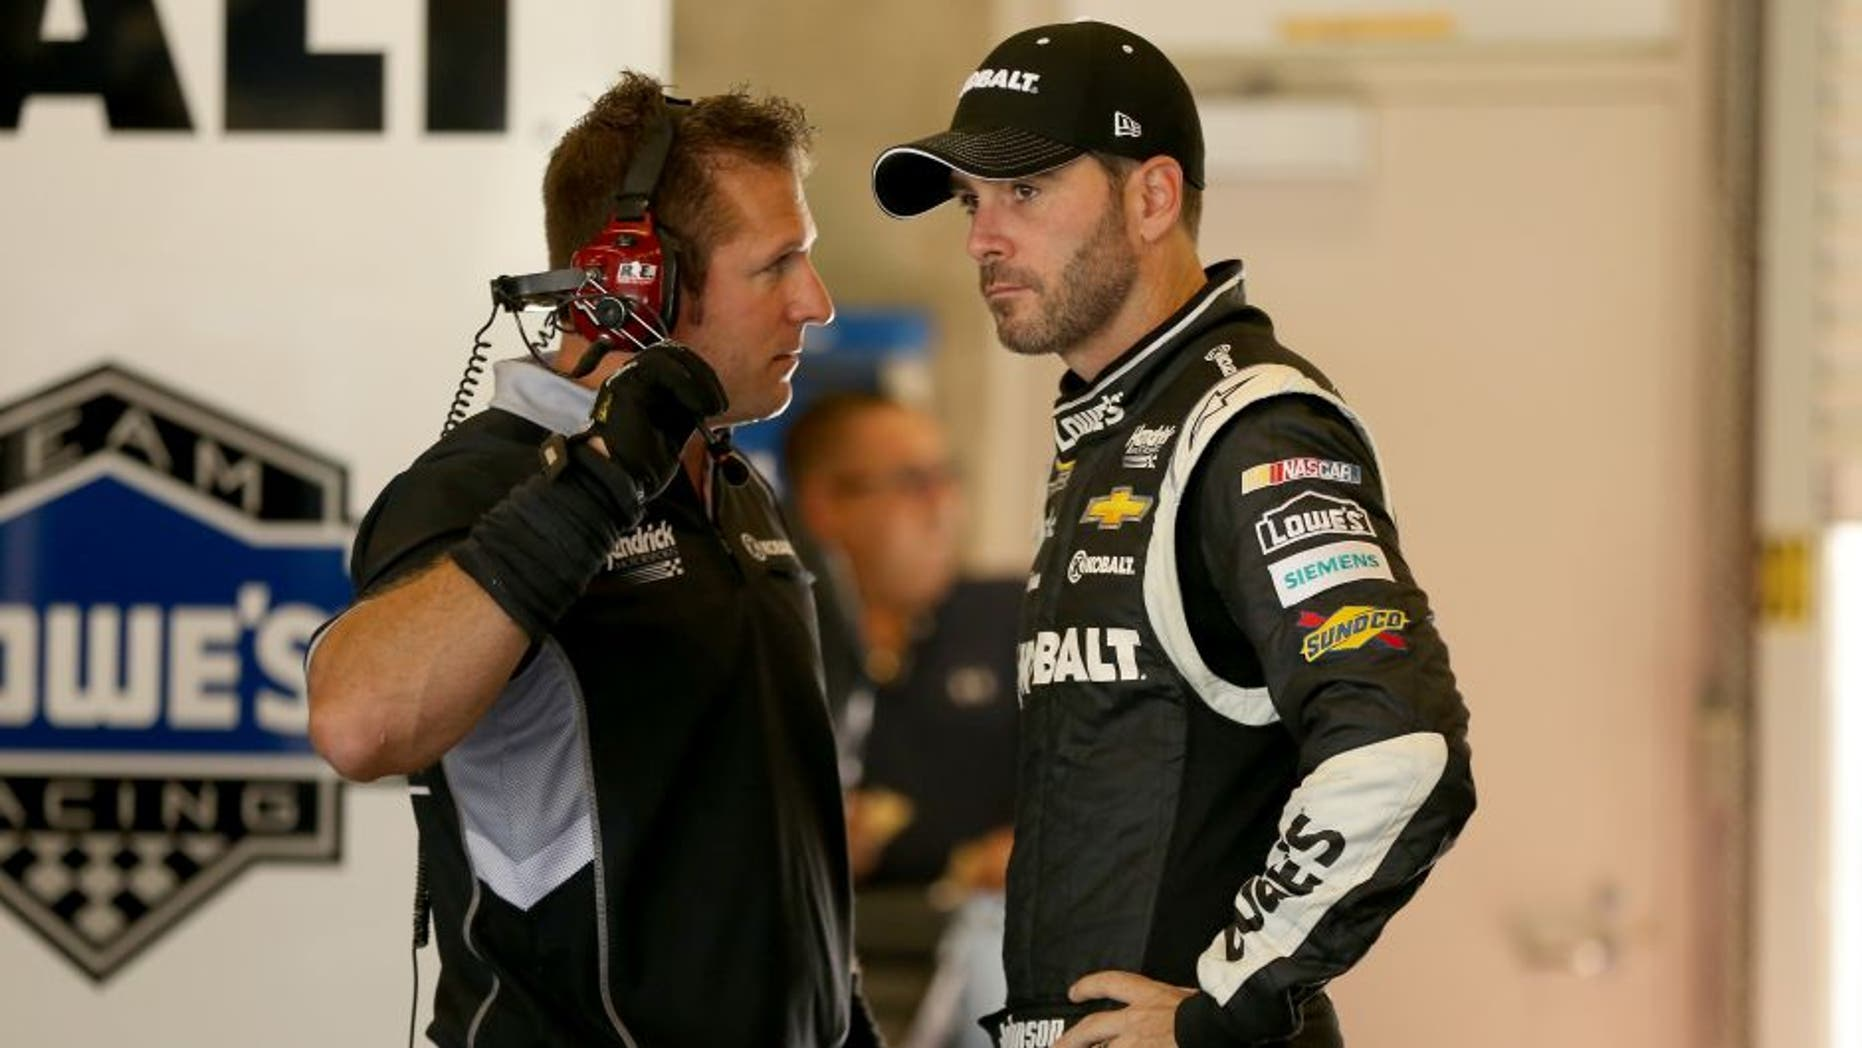 INDIANAPOLIS, IN - JULY 24: Jimmie Johnson, driver of the #48 Kobalt Tools Chevrolet, stands in the garage during practice for the NASCAR Sprint Cup Series Crown Royal Presents the Jeff Kyle 400 at the Brickyard at Indianapolis Motorspeedway on July 24, 2015 in Indianapolis, Indiana. (Photo by Andy Lyons/Getty Images)